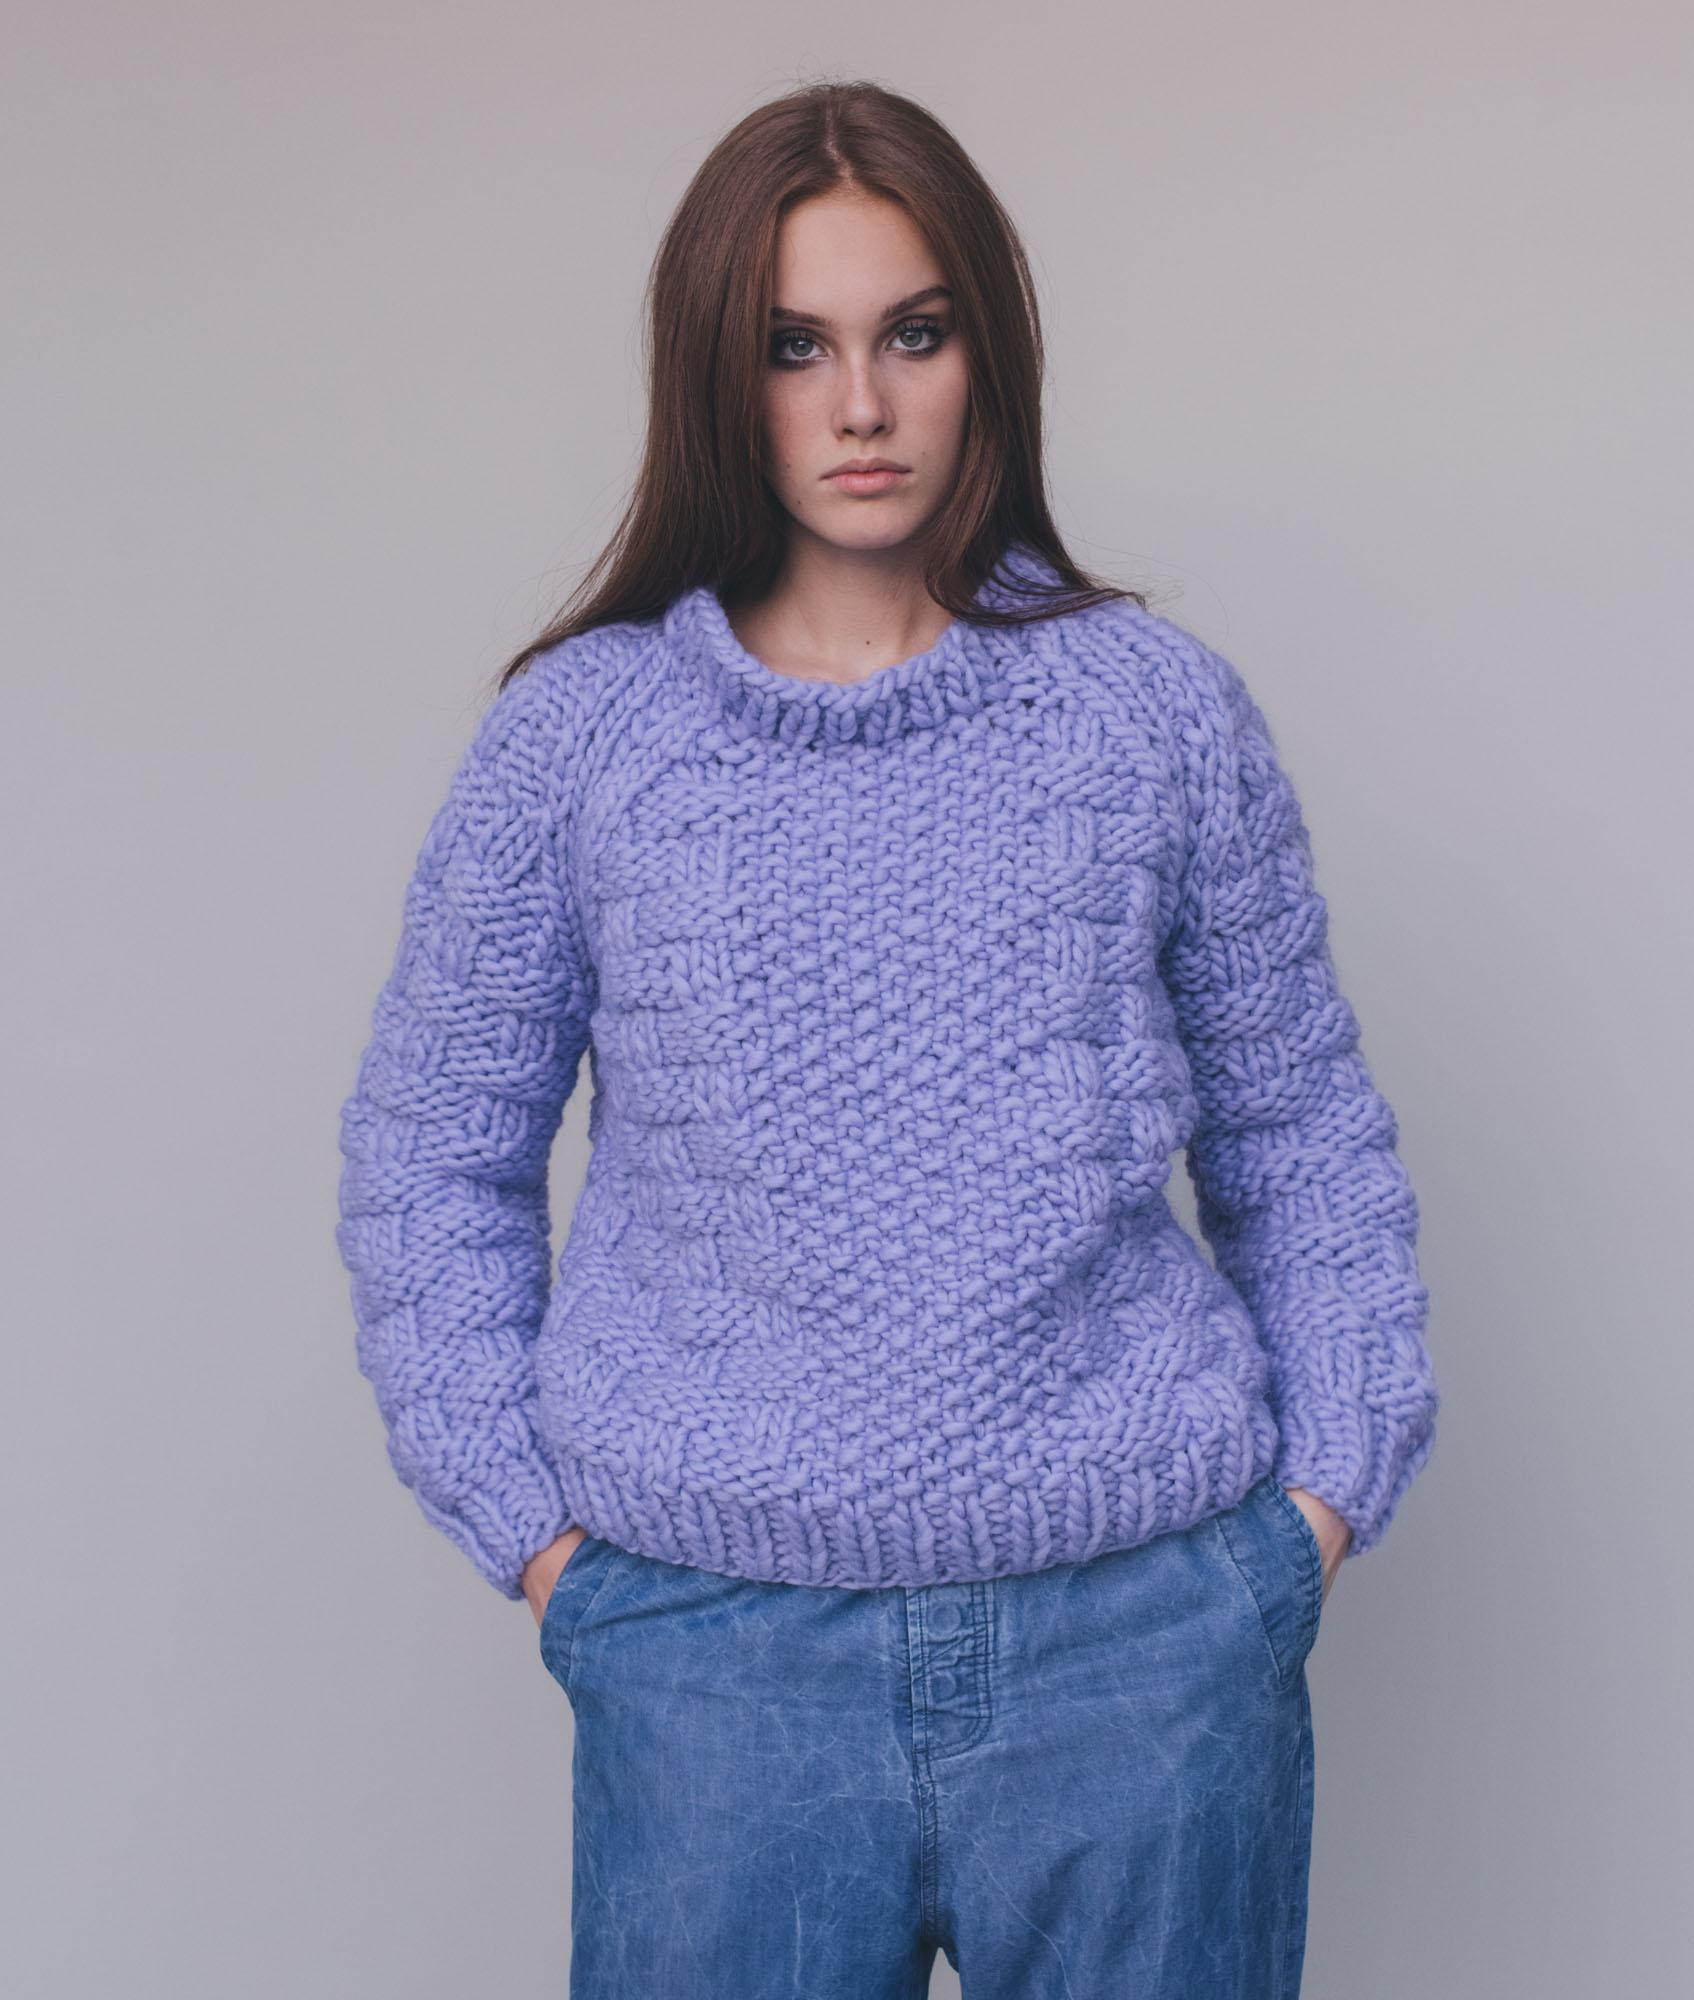 Sweaters and Tops - Wool - Alyon Pull - 1